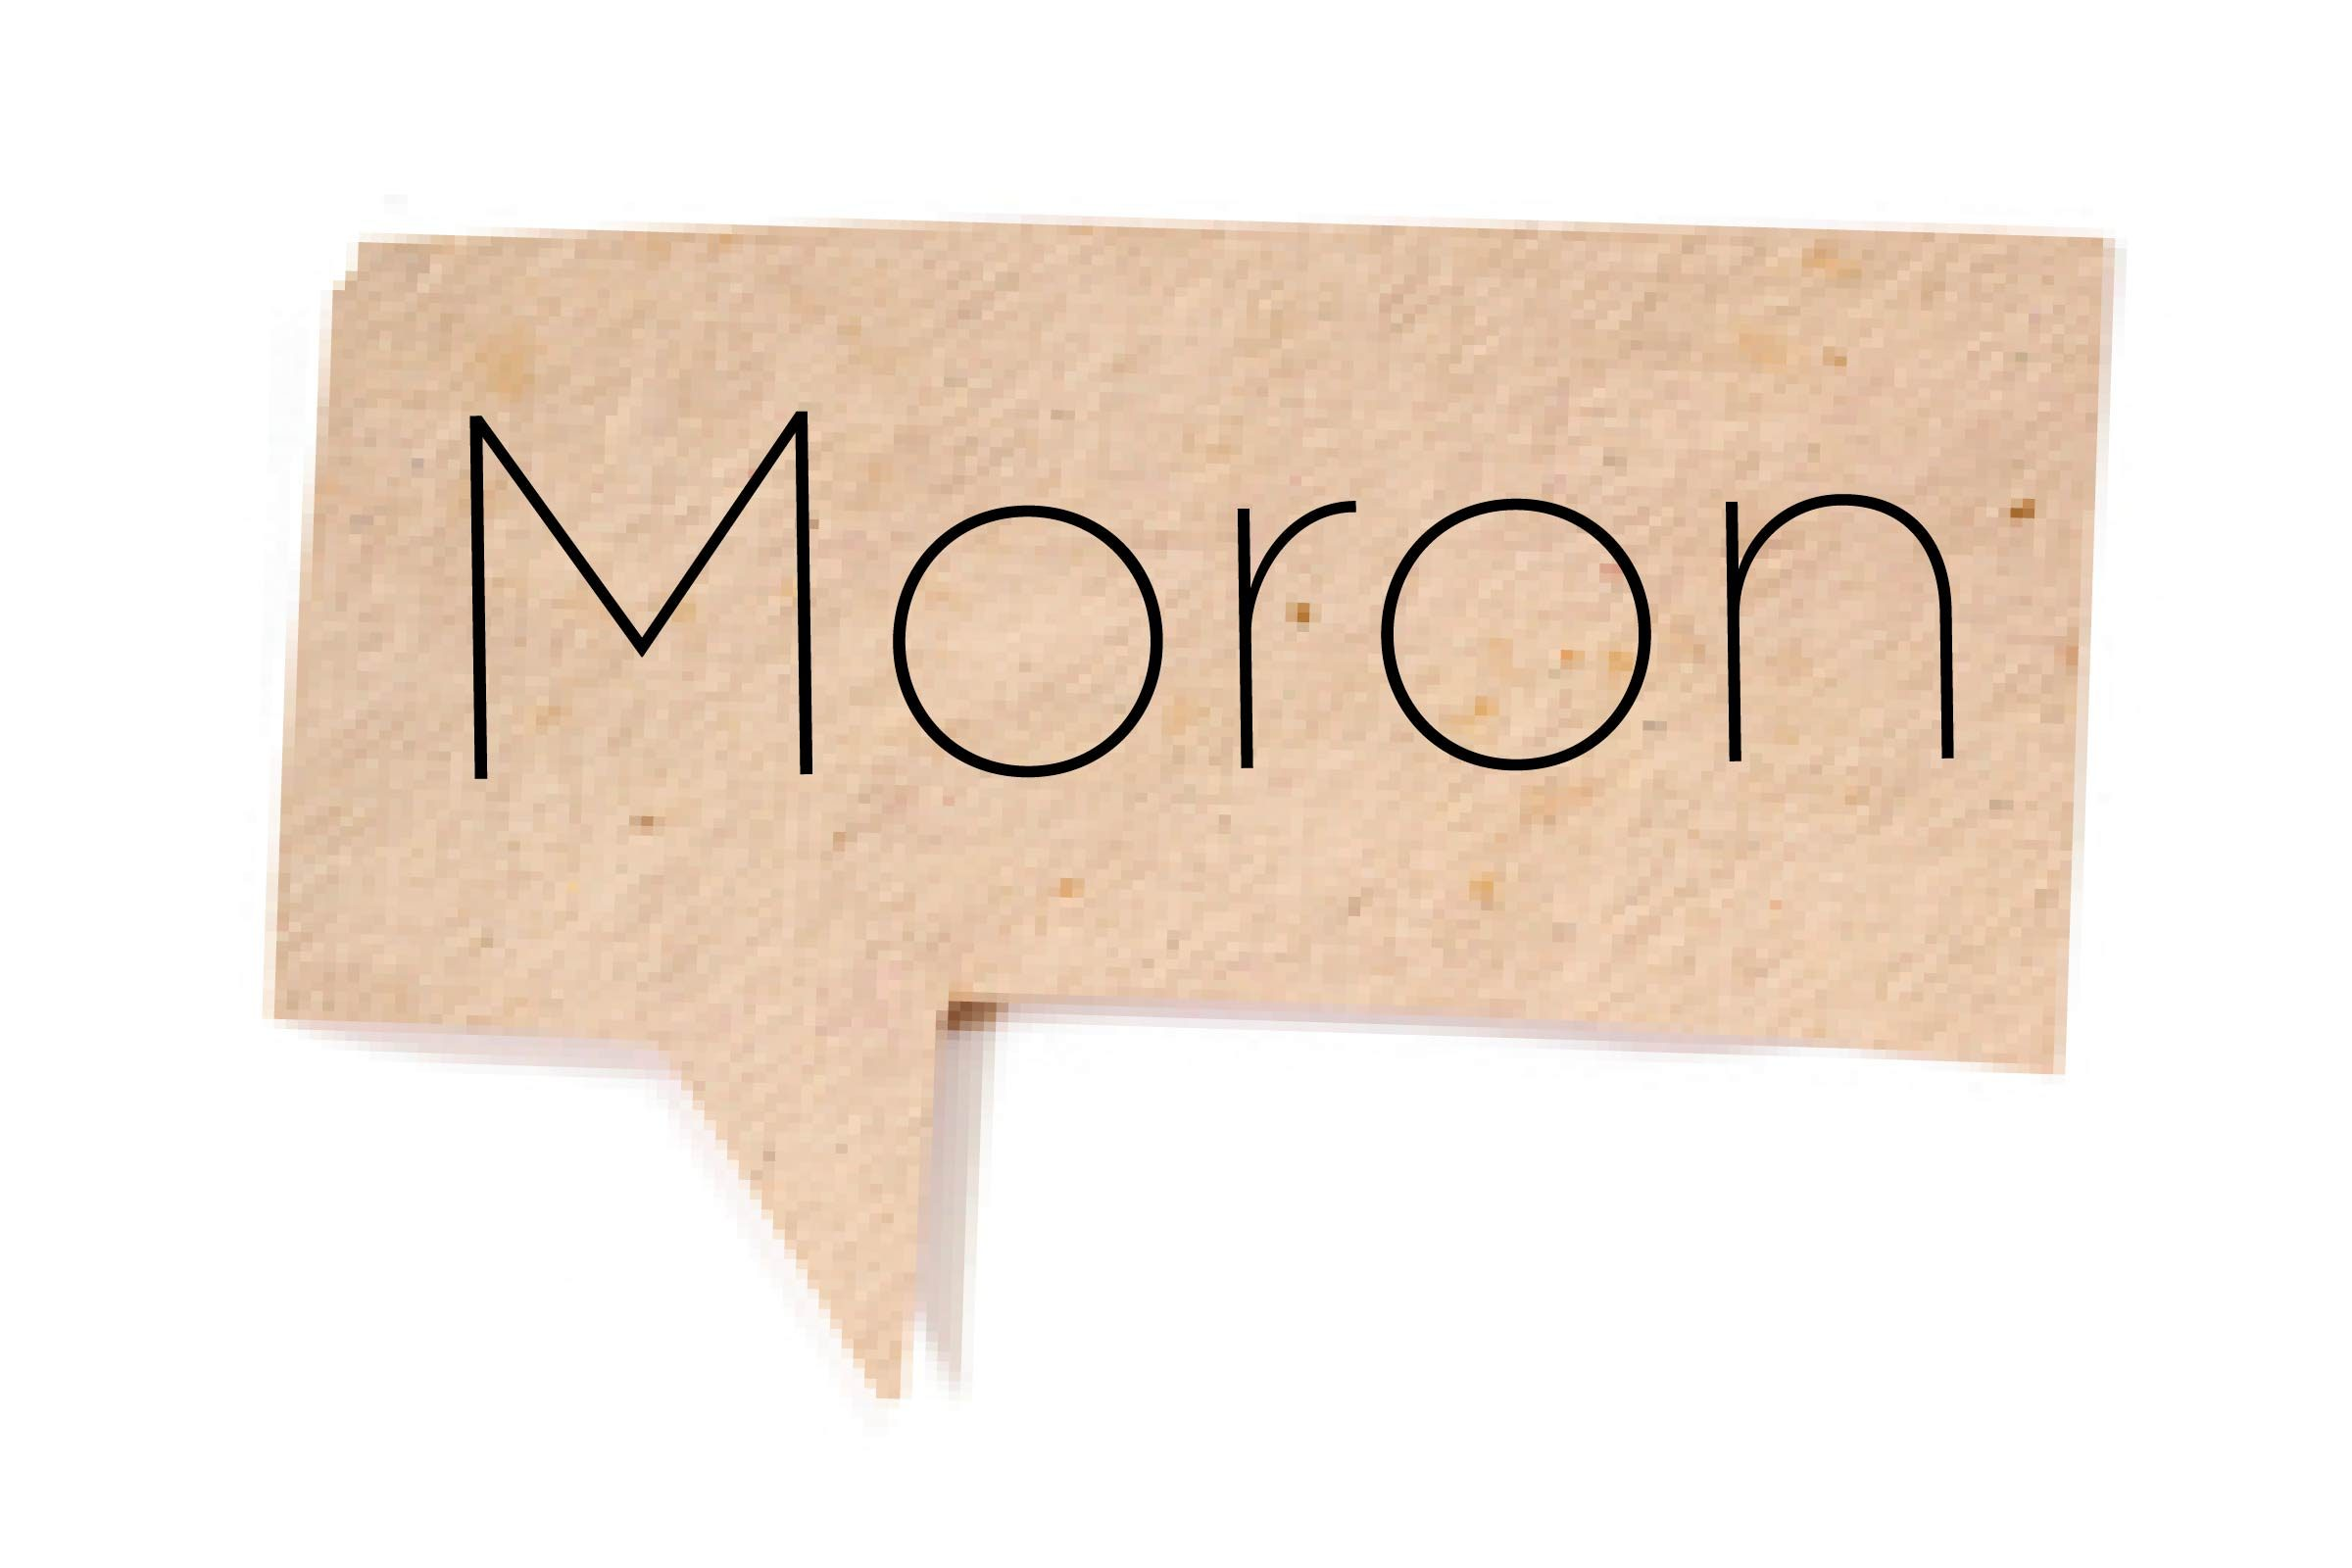 Offensive words - Moron